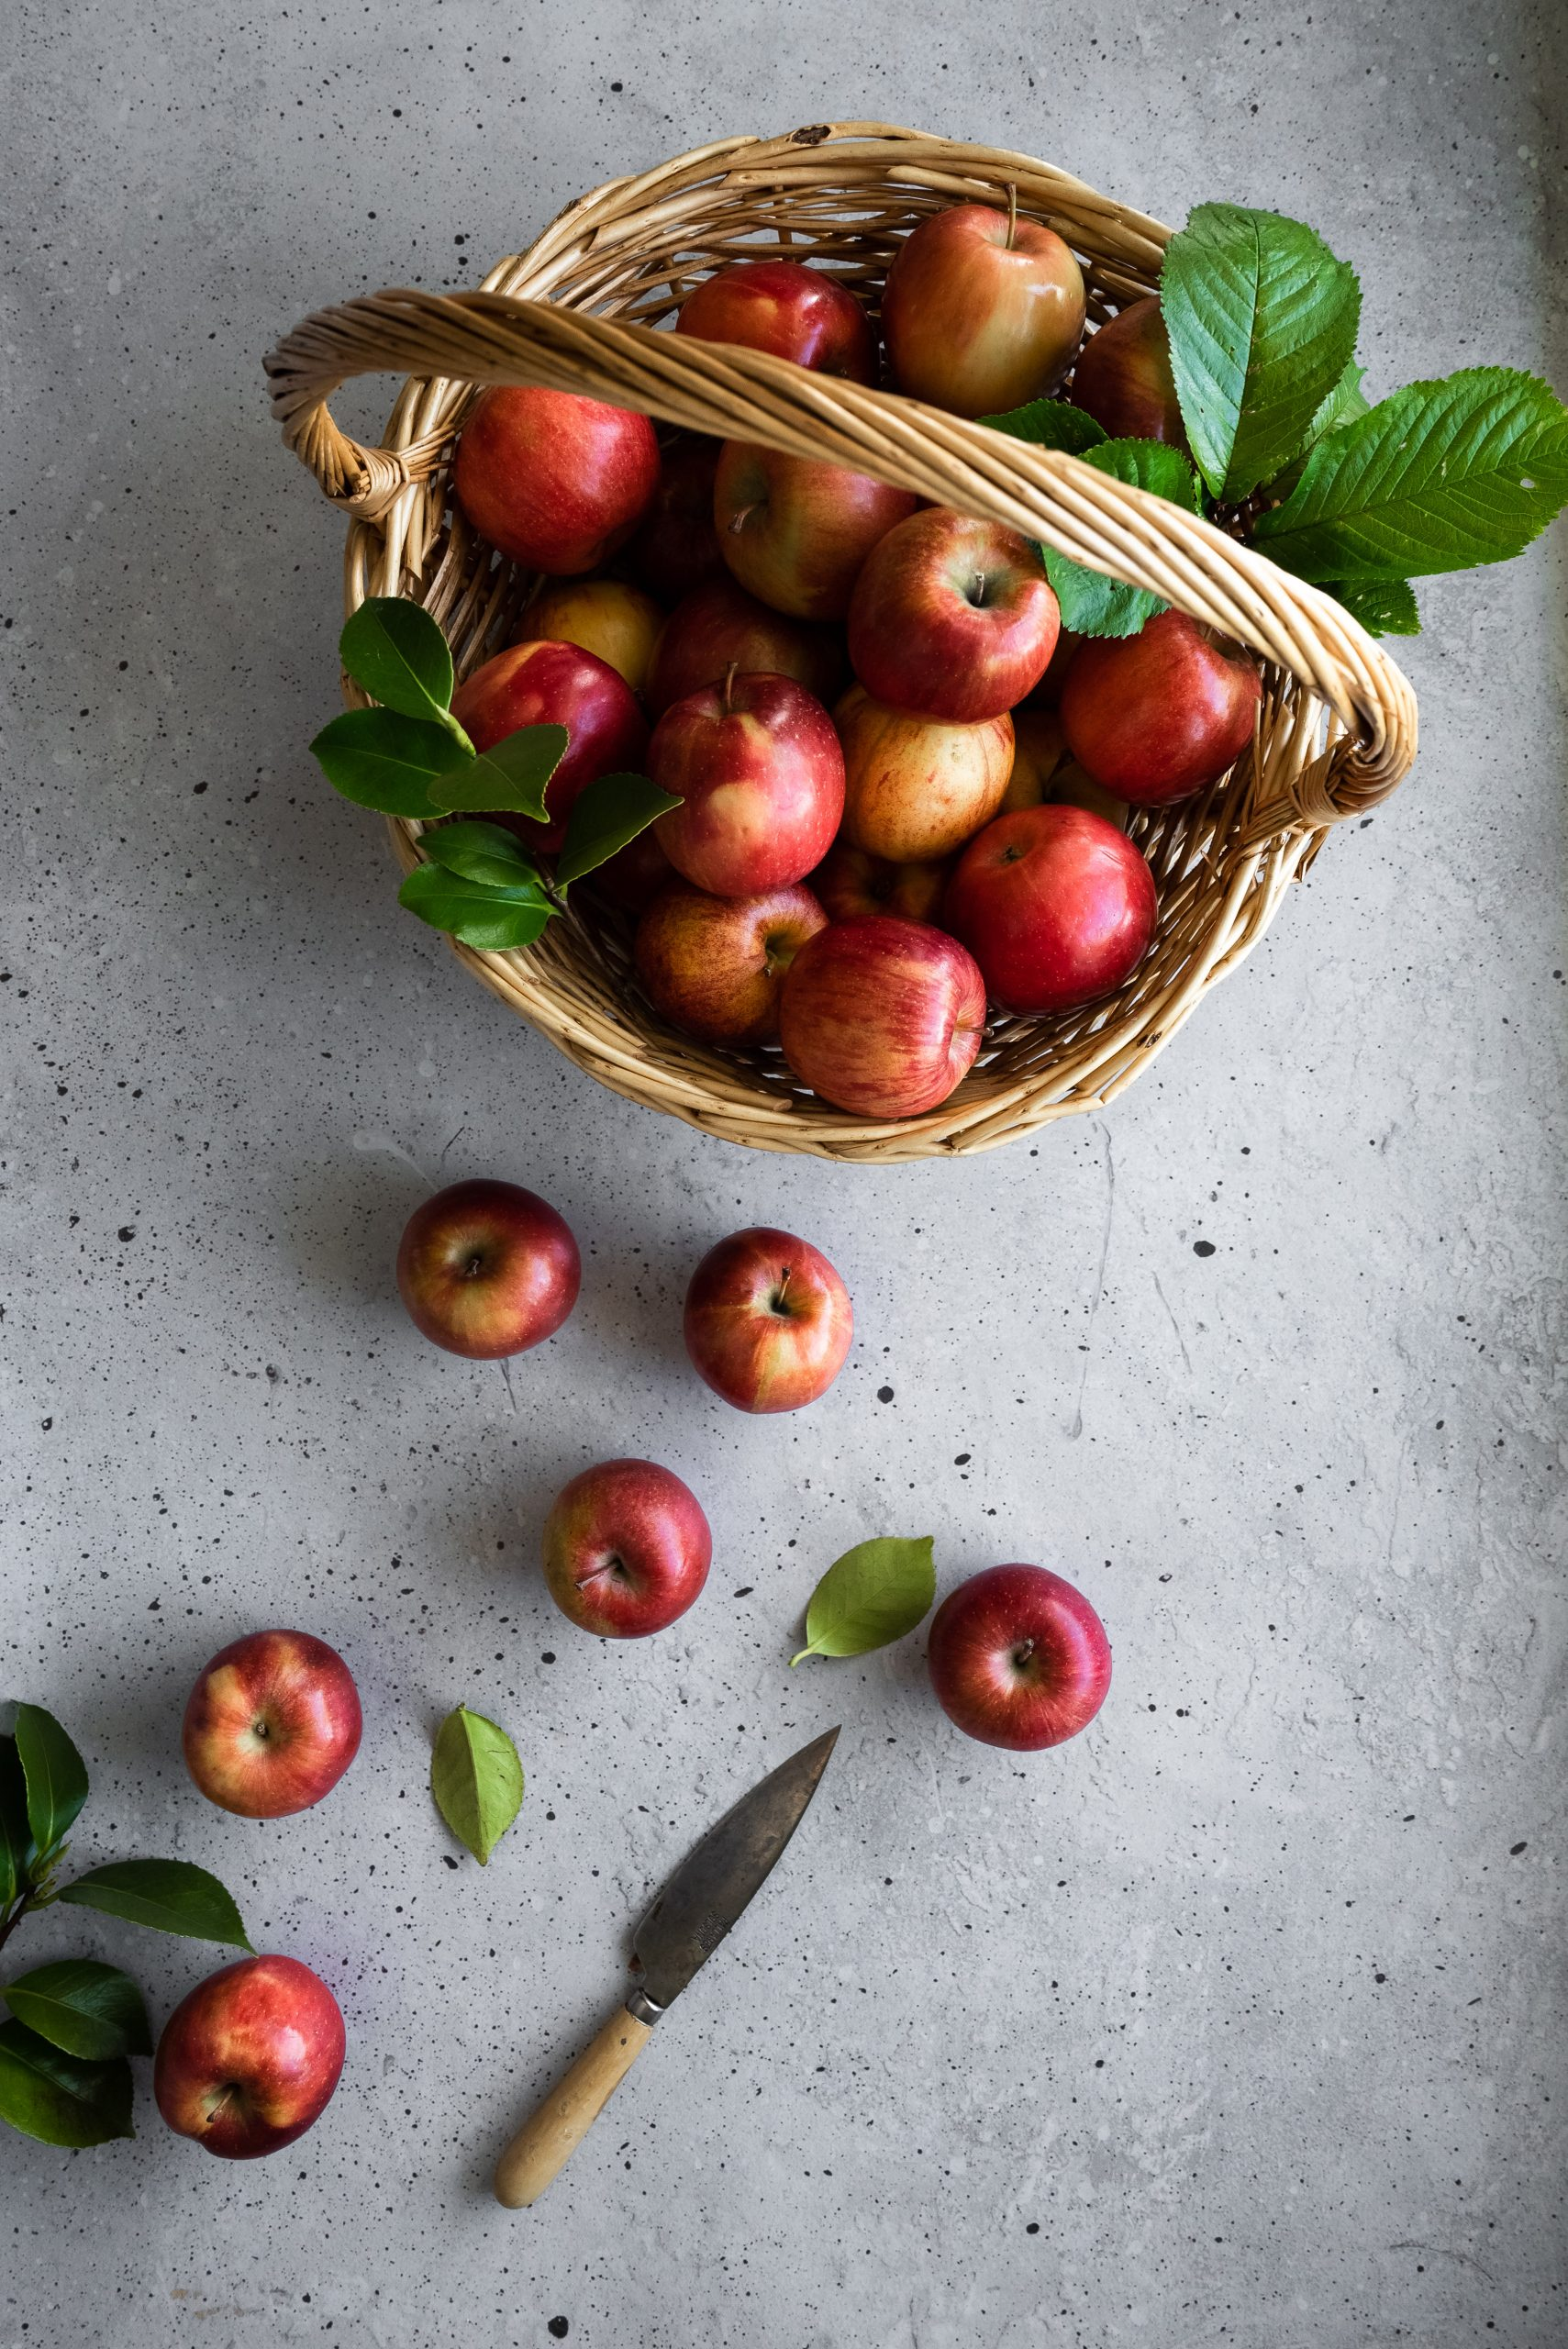 overhead image of a basket of red apples with leaves on a grey surface with a paring knife in the bottom middle.